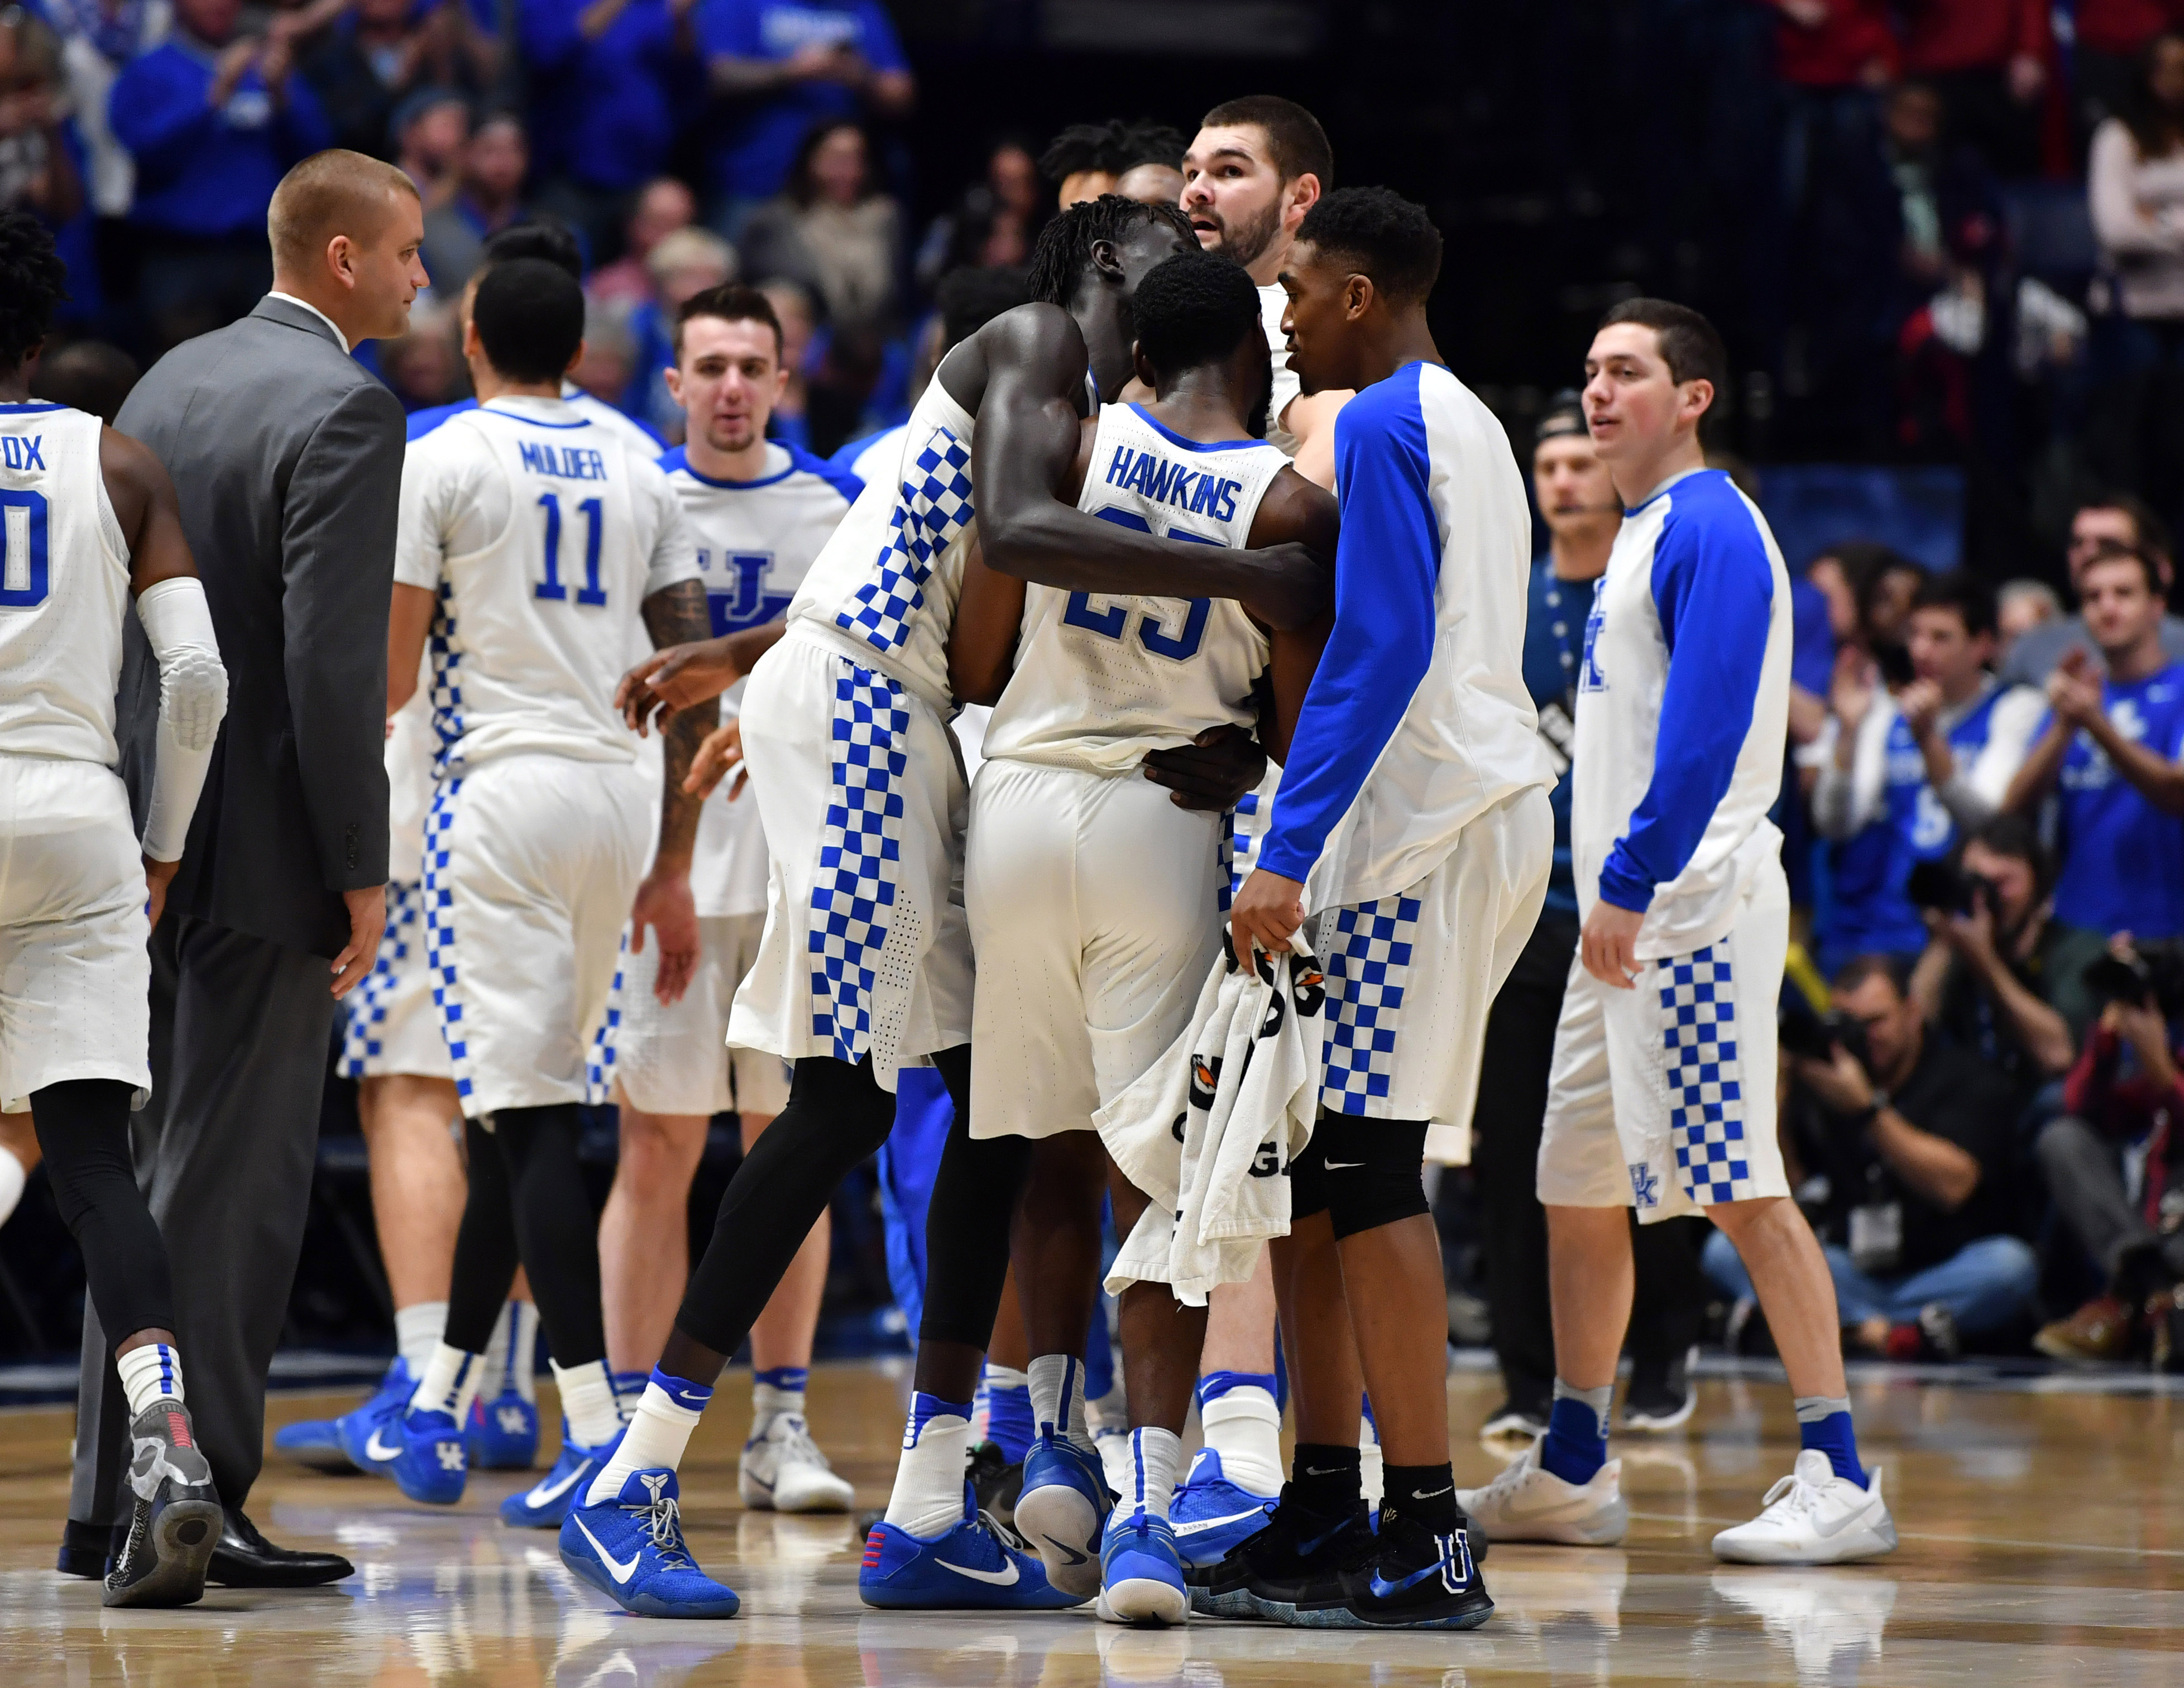 Uk Basketball: Moses Kingsley Ejected For Cheap Shot On De'Aaron Fox